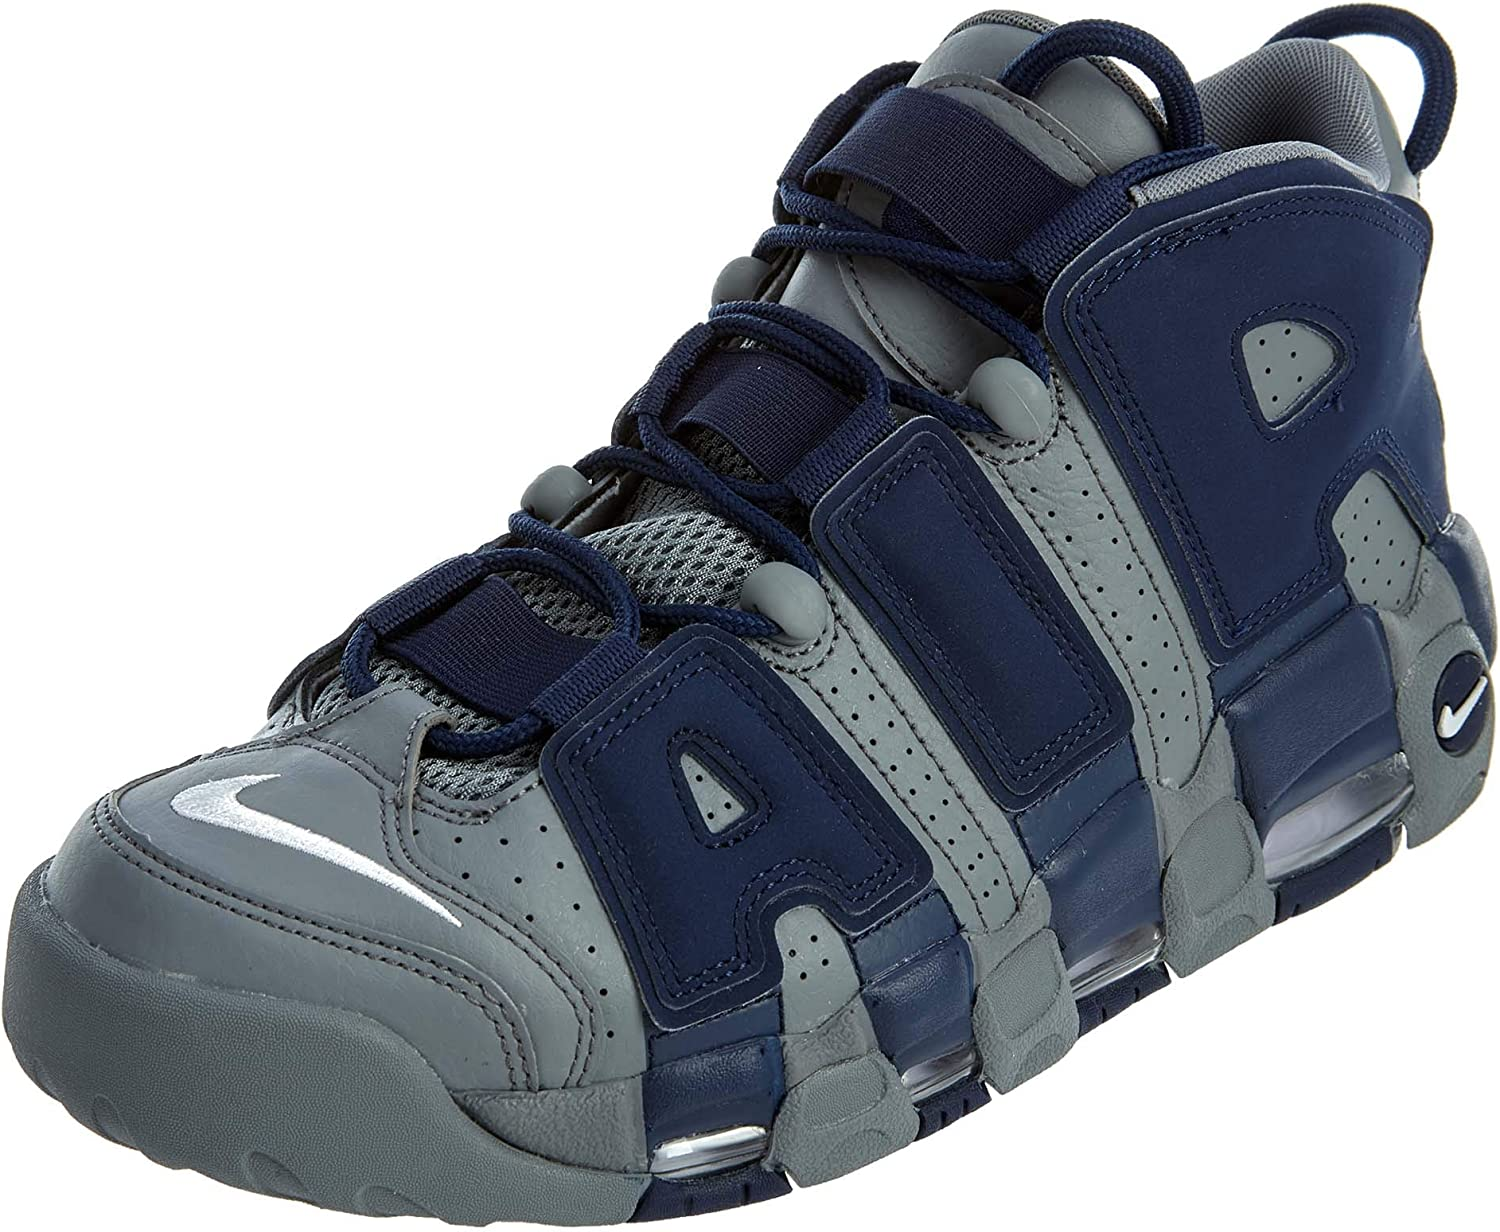 Nike AIR More Uptempo '96 Men's Sneaker 921948-003